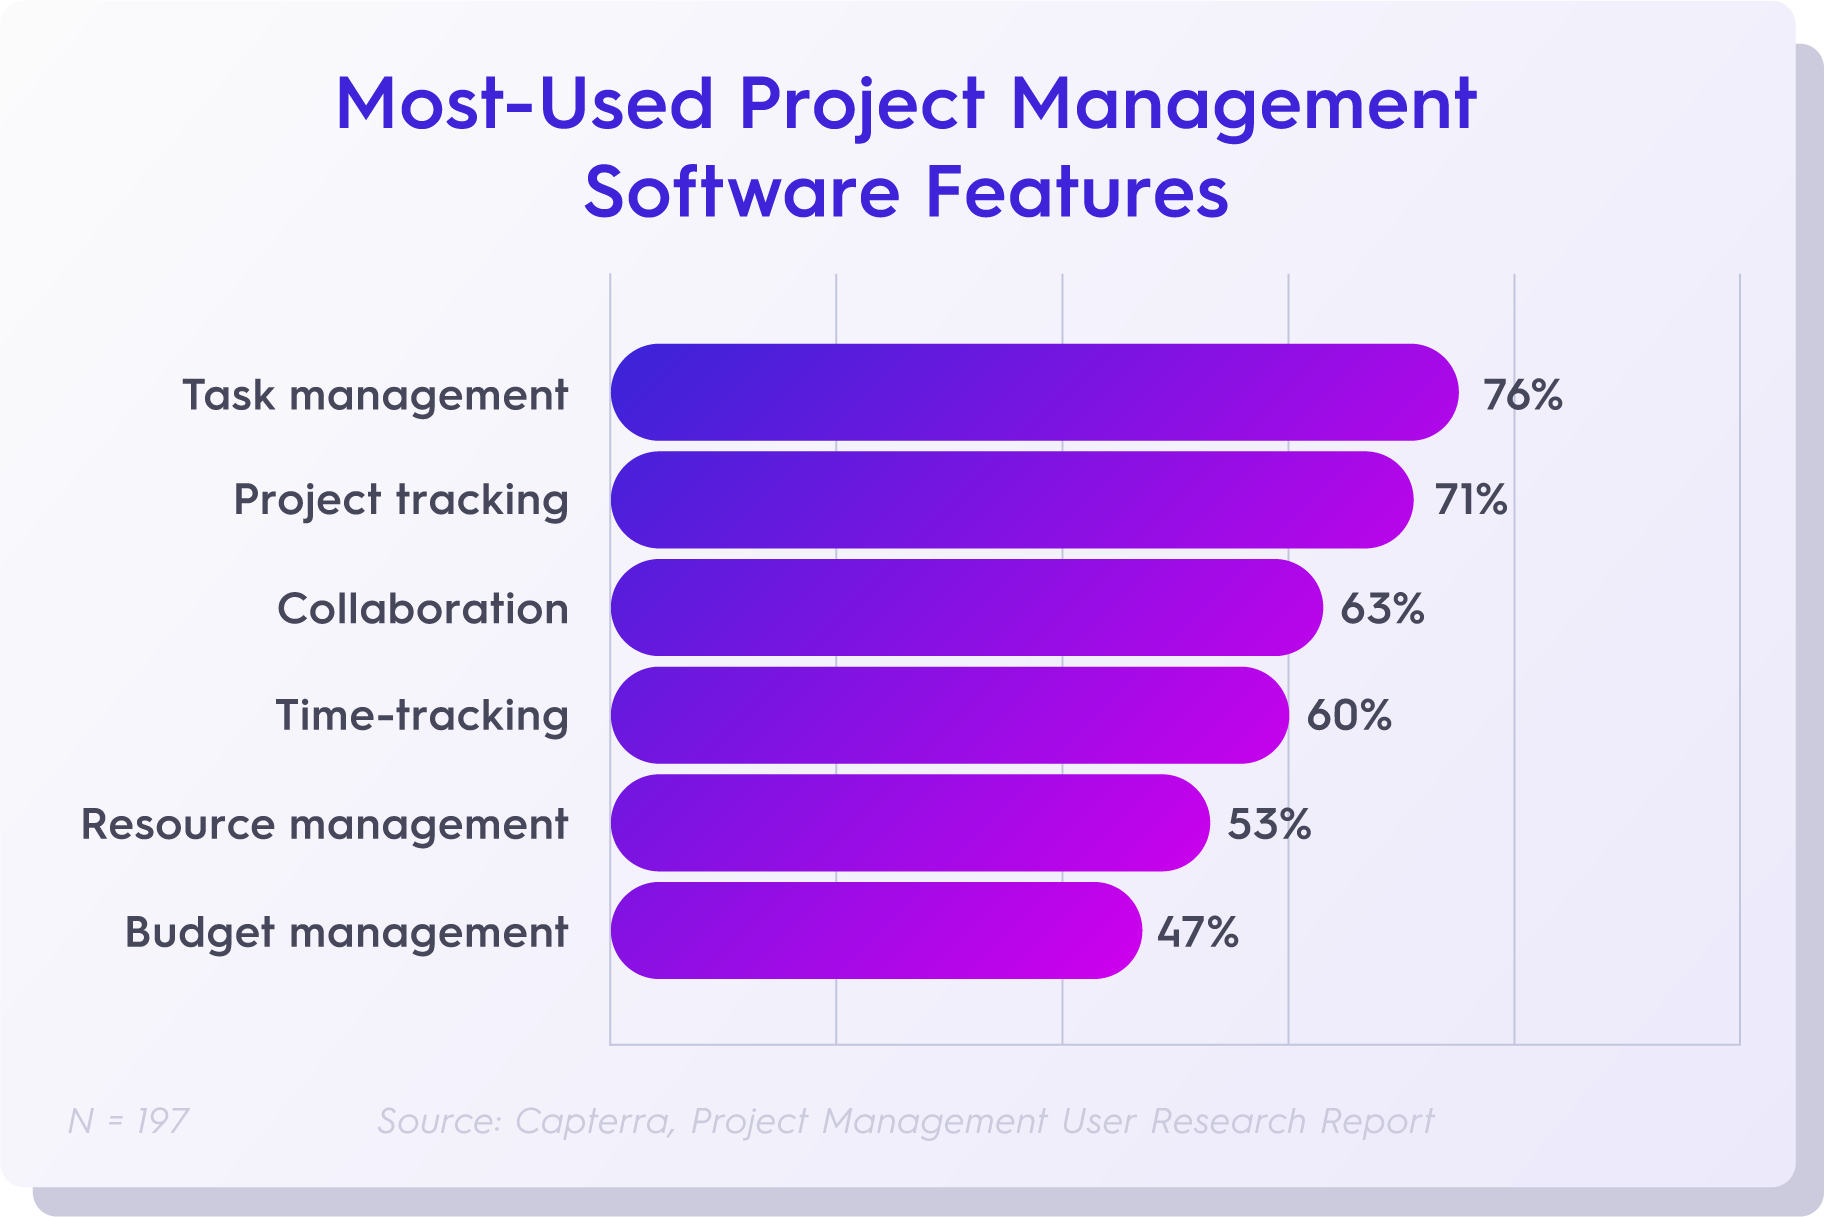 marketing management software most used features.png